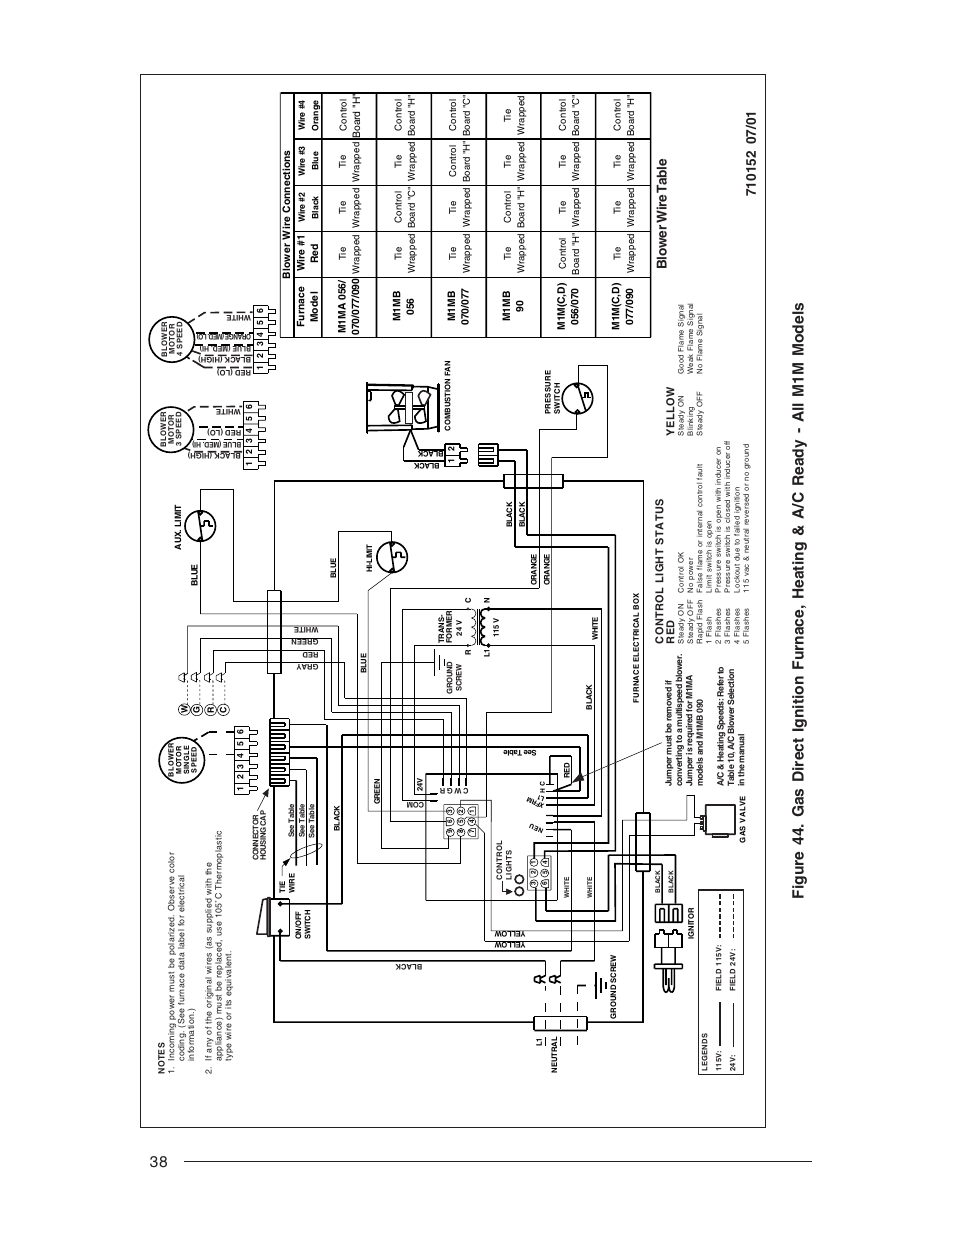 hight resolution of nordyne forced air gas and oil furnace m1m user manual page 38nordyne forced air gas and